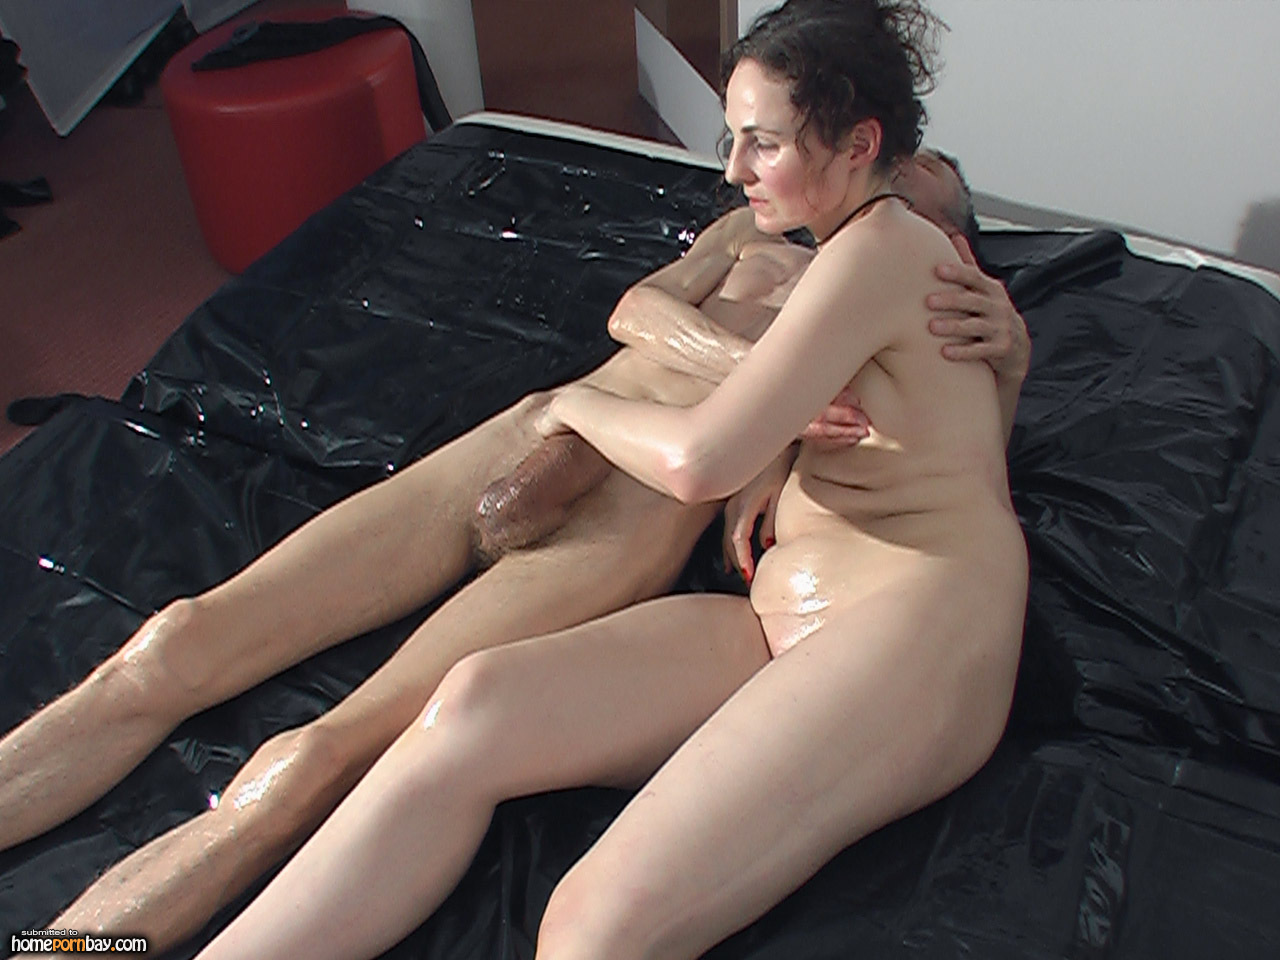 mature couple fucking - mobile homemade porn sharing